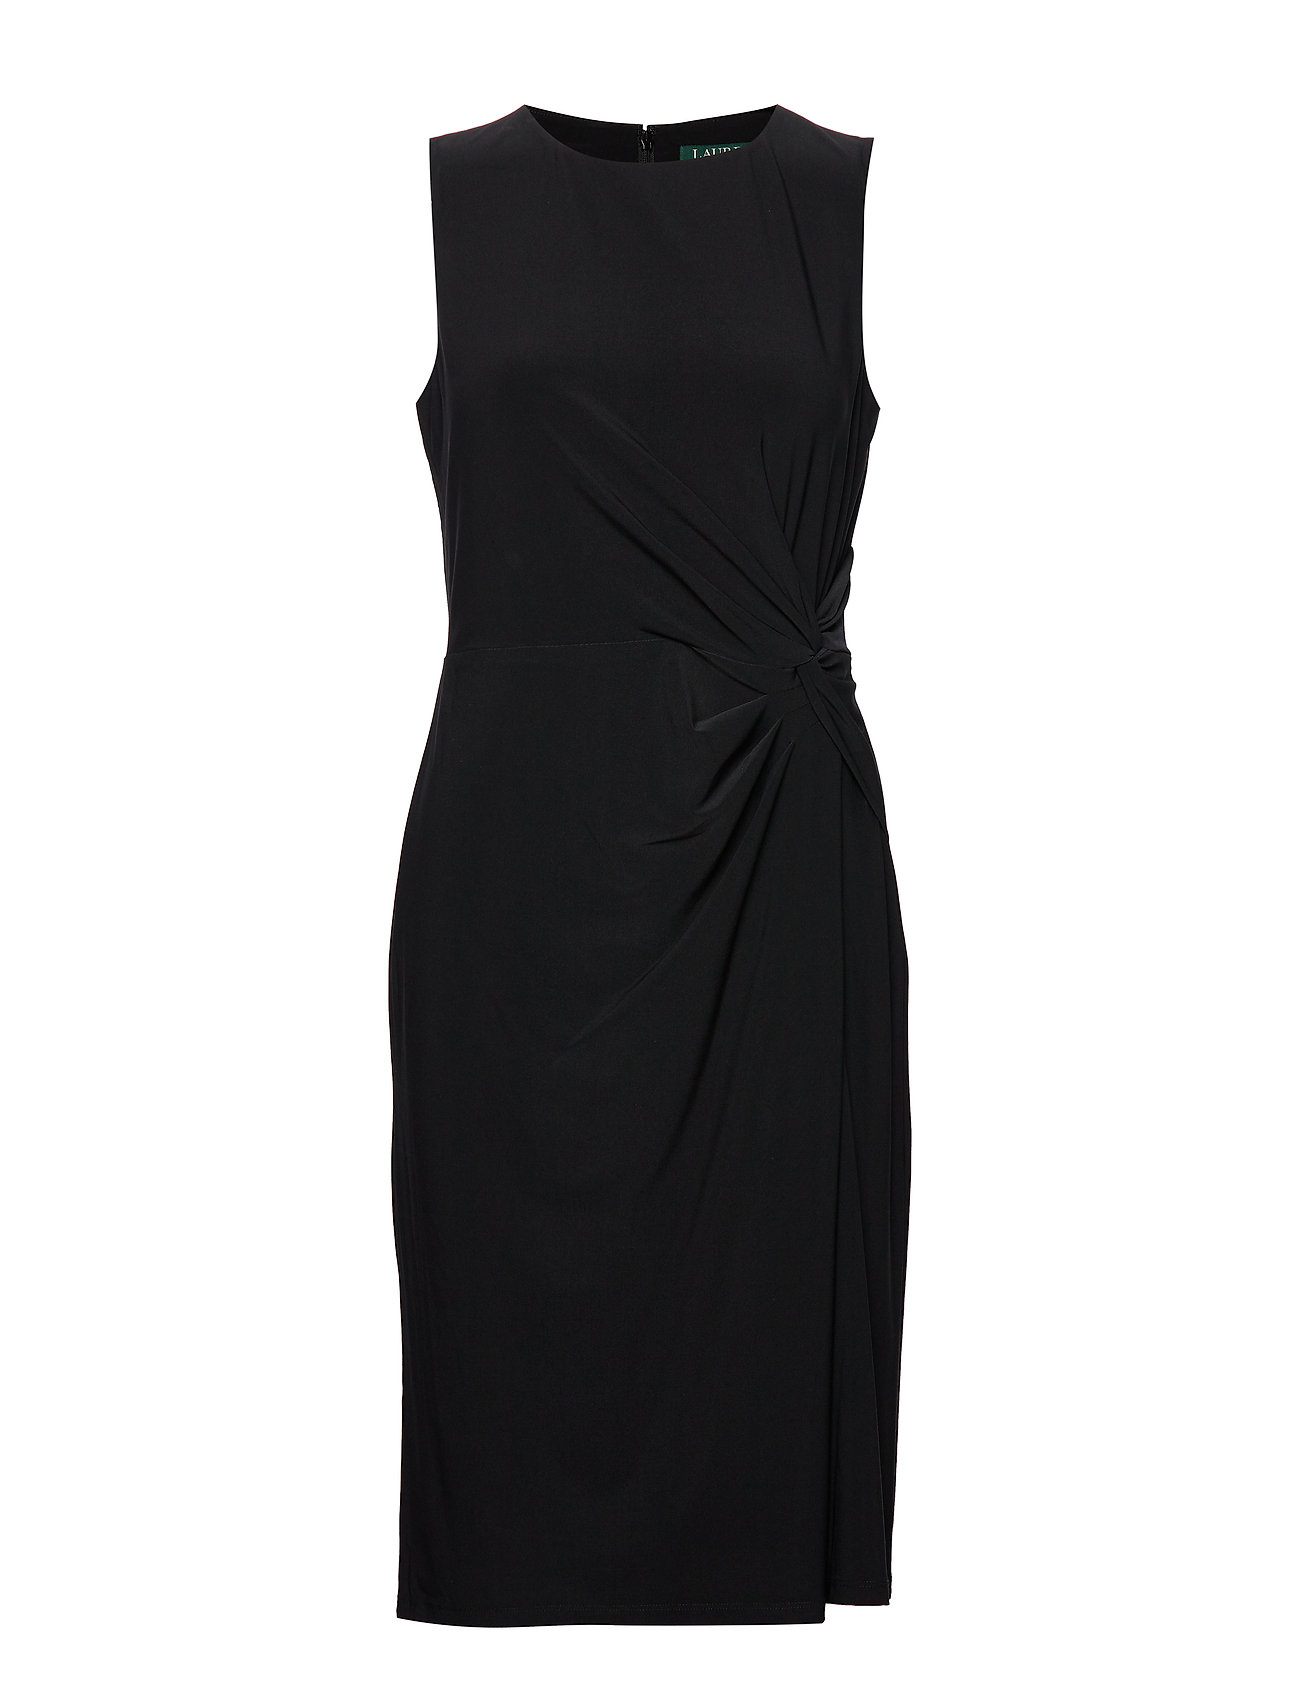 Lauren Ralph Lauren CLASSIC MJ-DRESS - BLACK